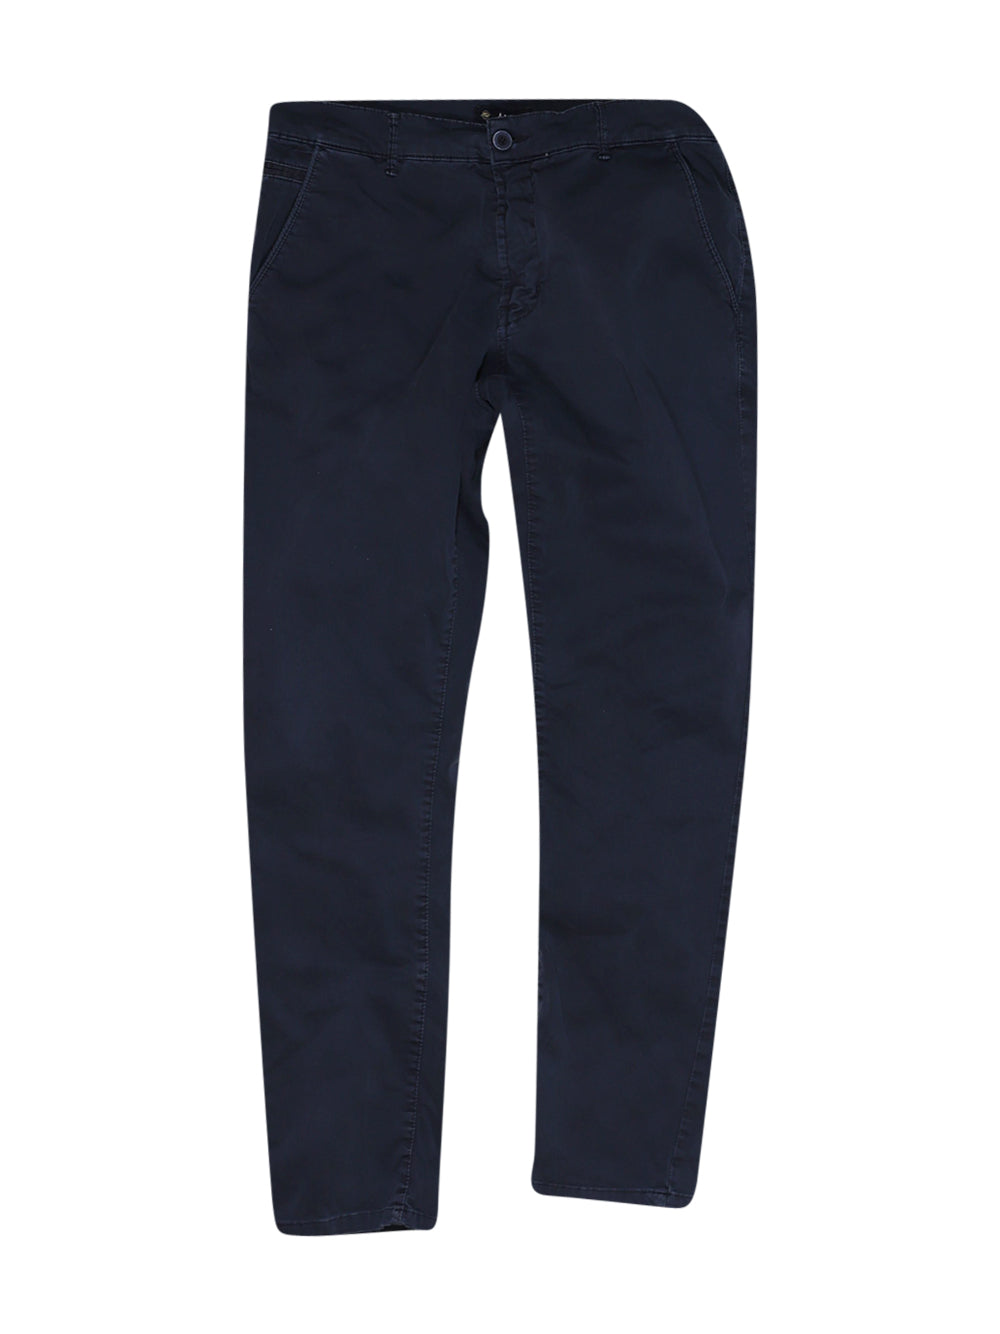 Front photo of Preloved Malcom Blue Man's trousers - size 38/M